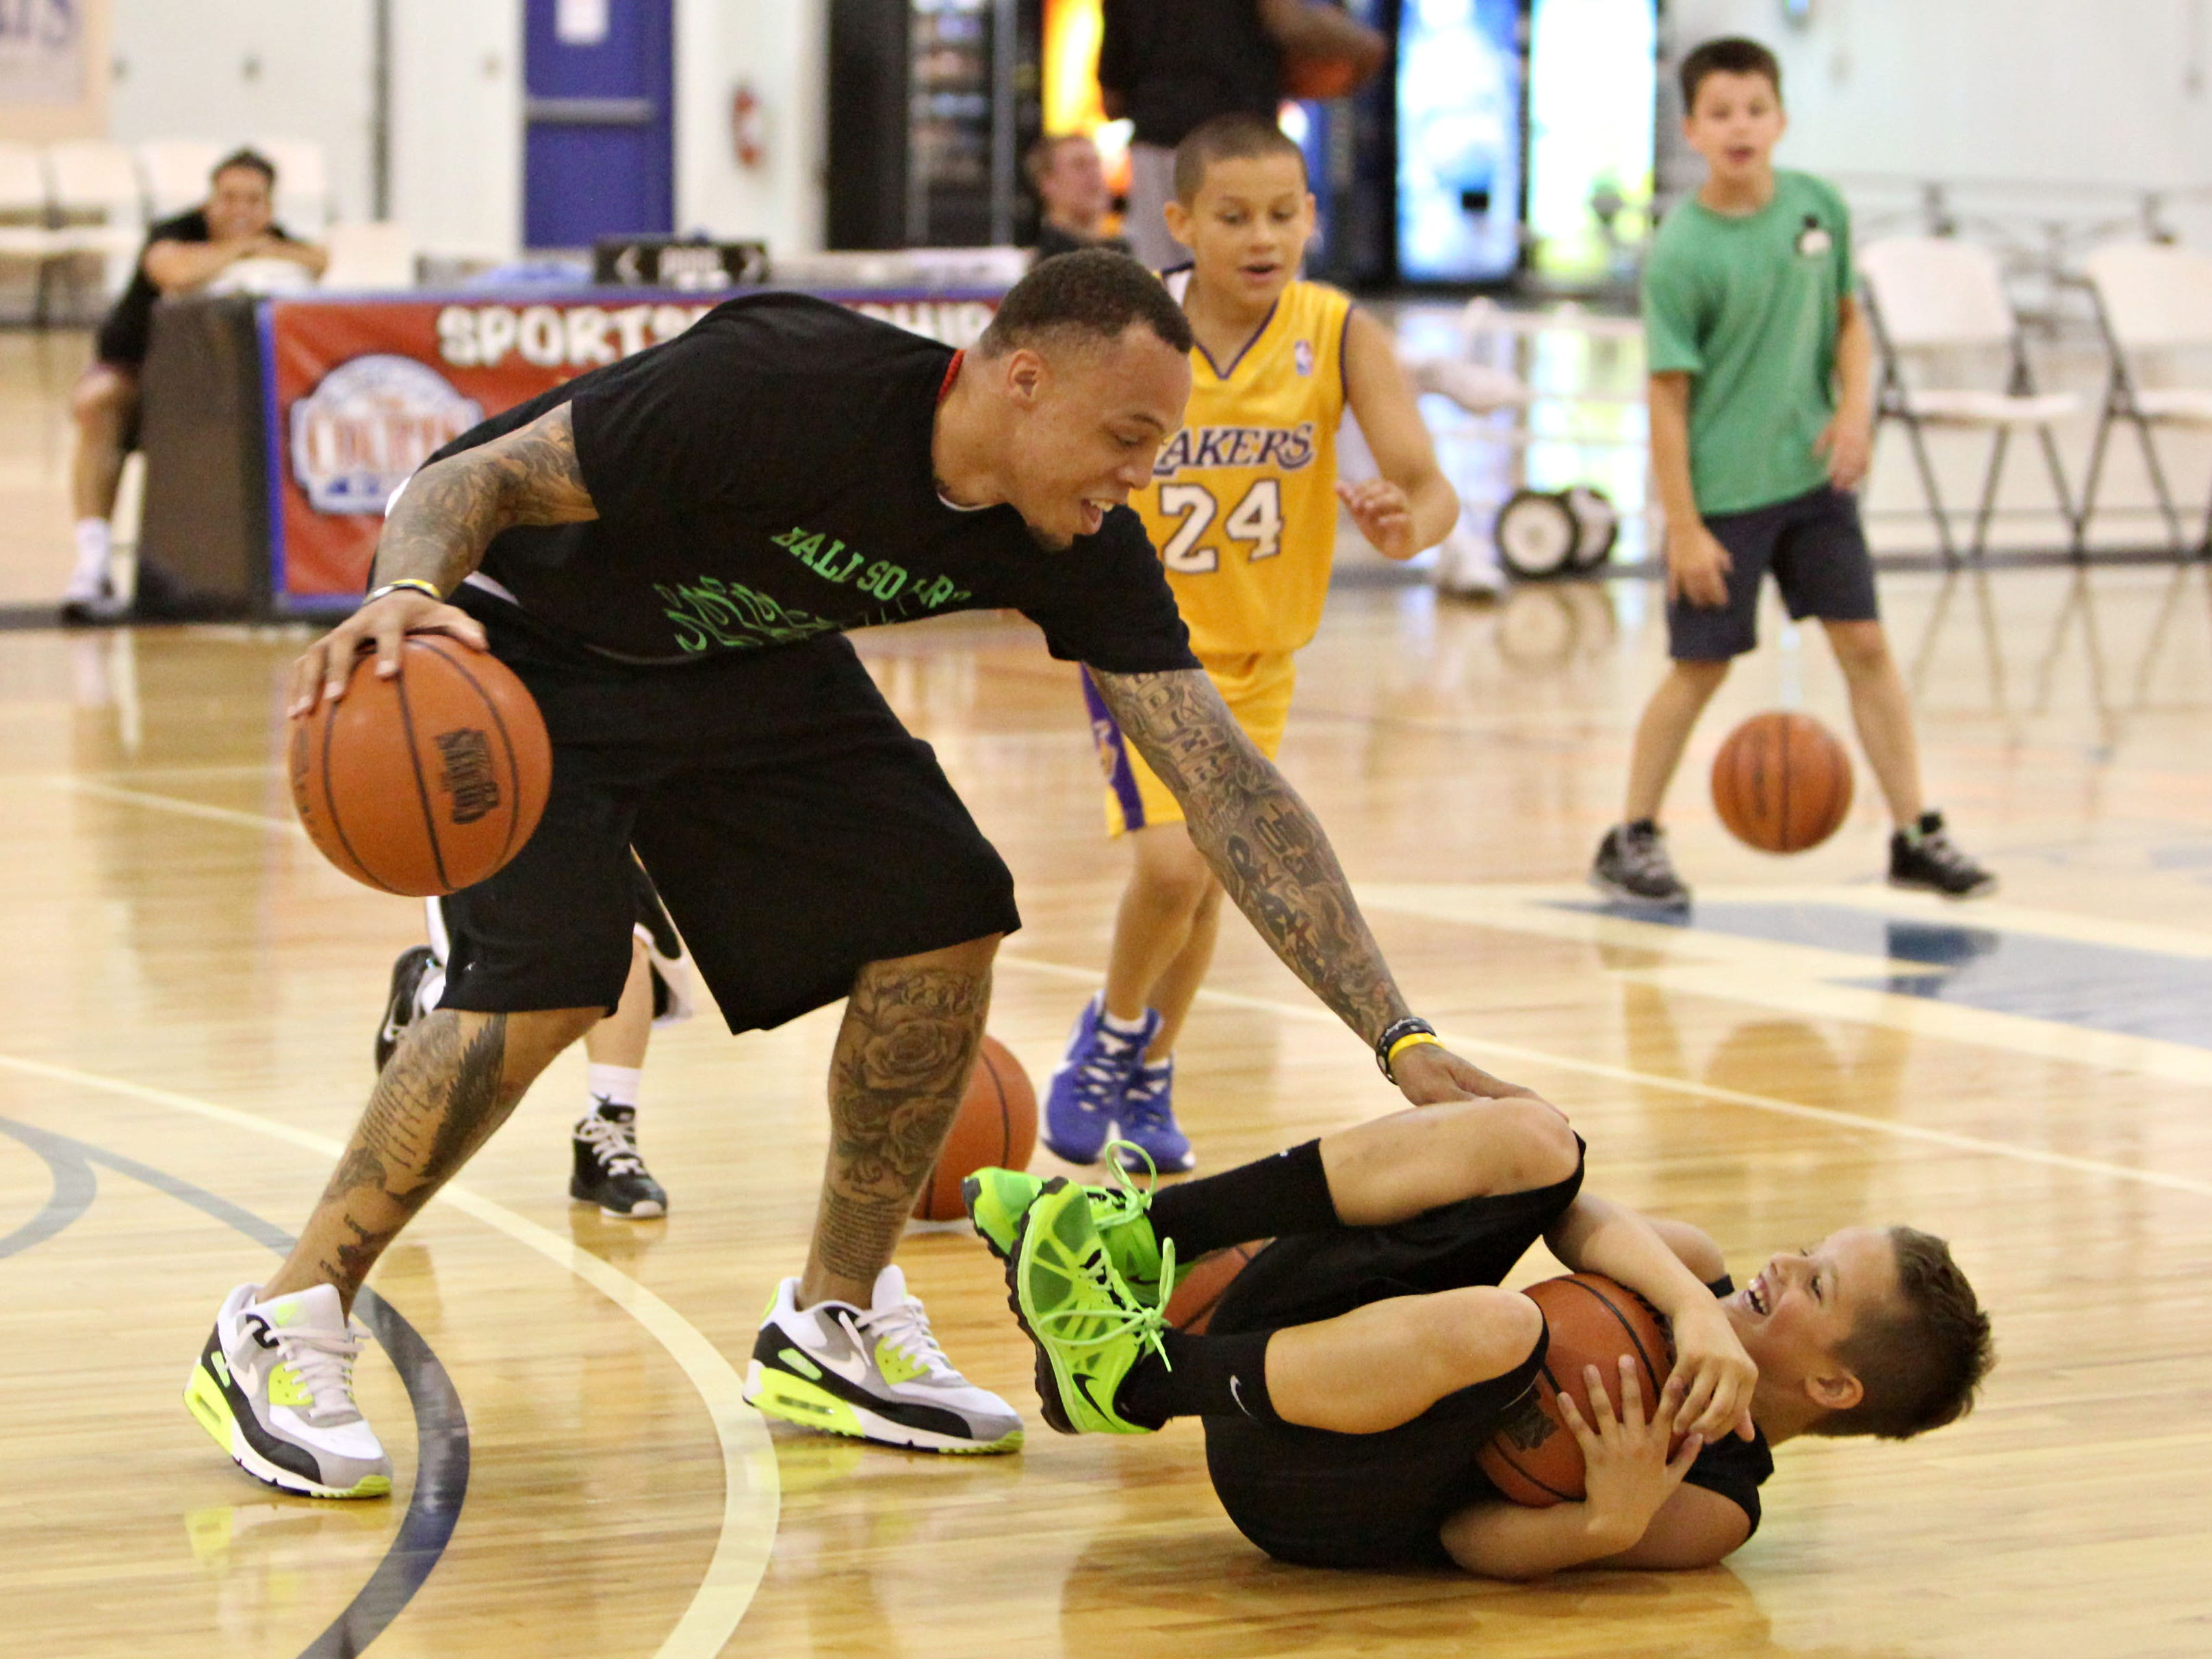 Former Bear Deven Mitchell tags Cooper Roy, 9, during a kids camp at The Courts on Monday, July 1, 2013.